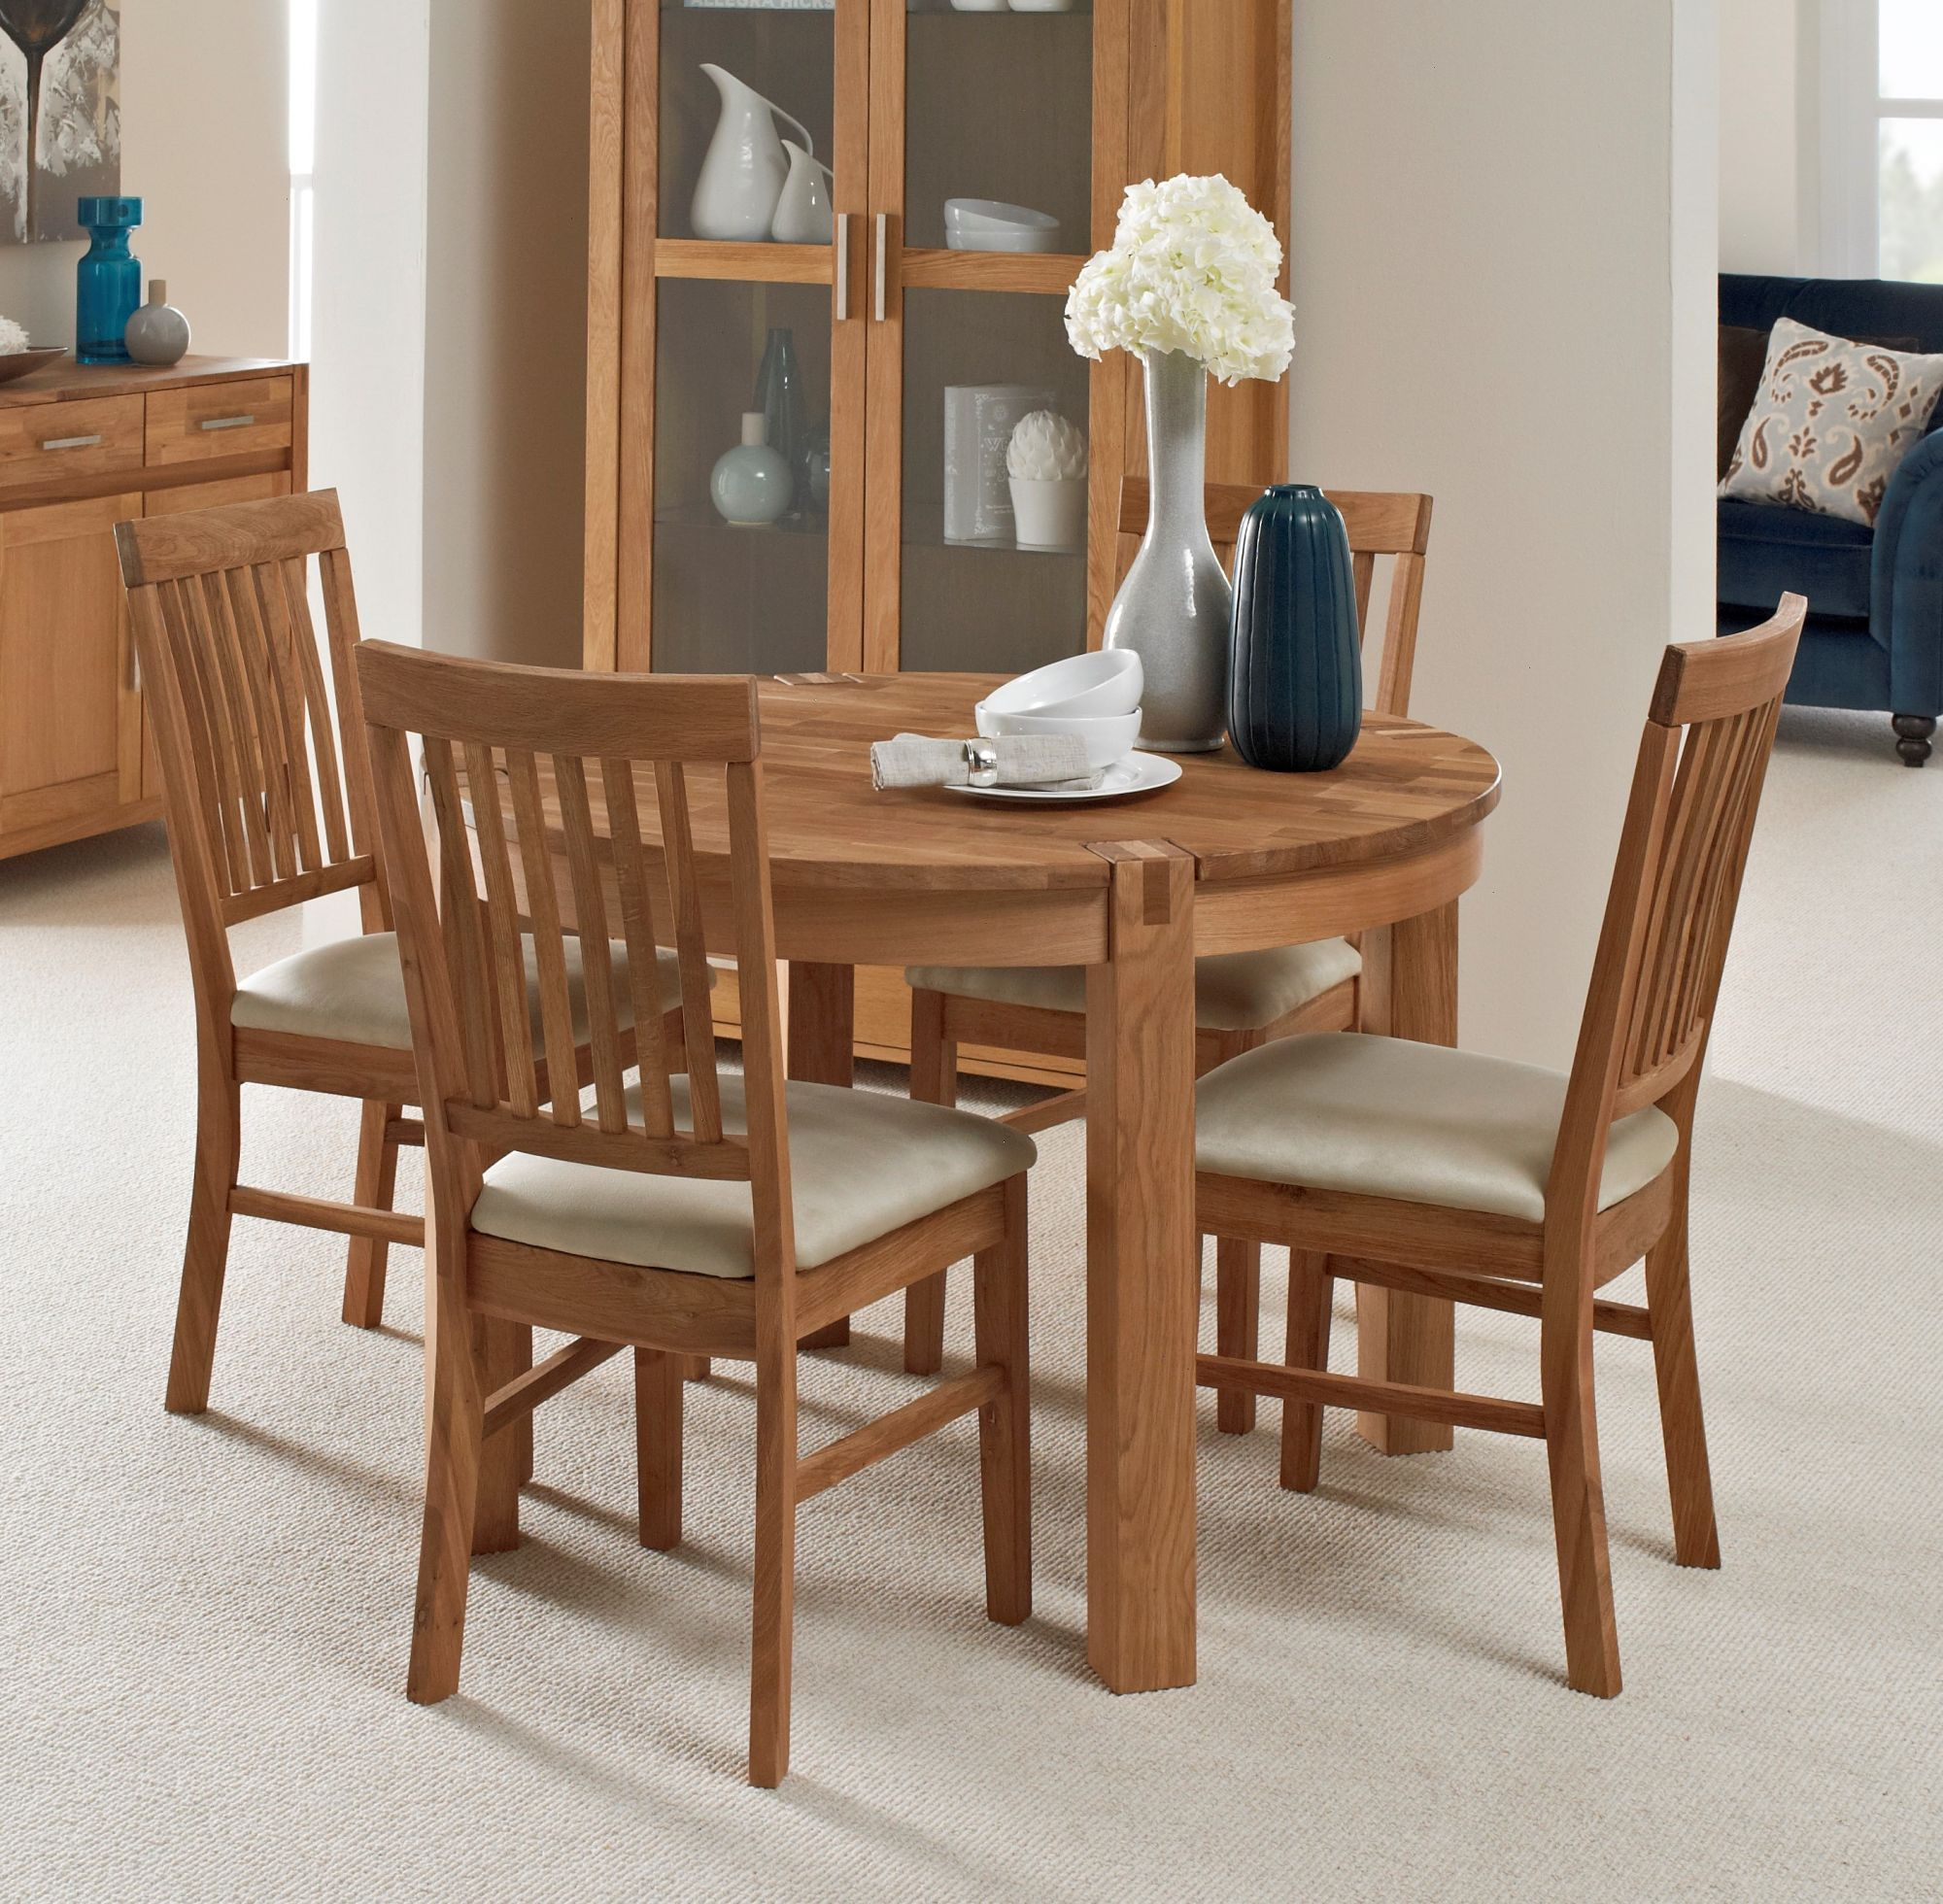 Living homes collection regis oak round extending dining table 4 fabric chairs dining sets living homes